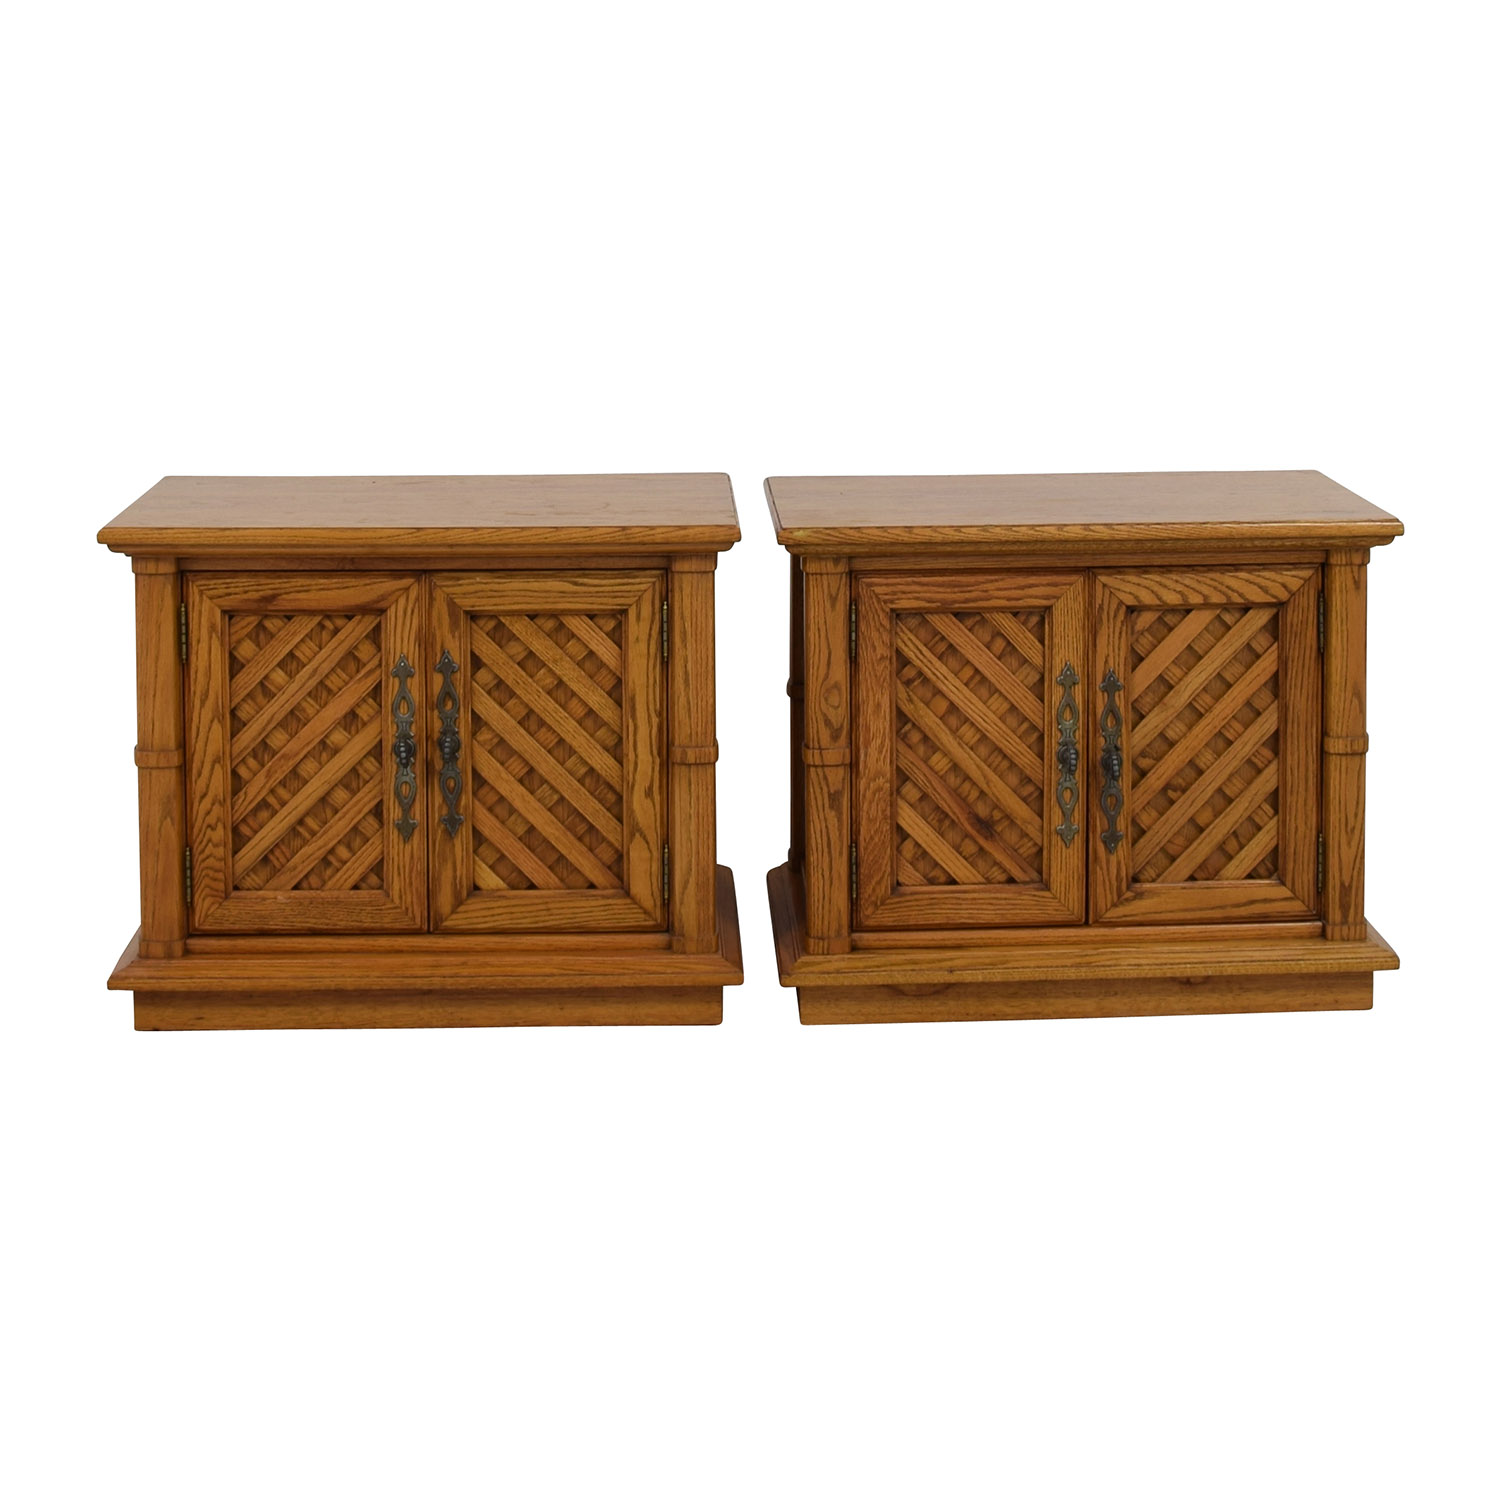 Buy Thomasville End Tables Thomasville ...